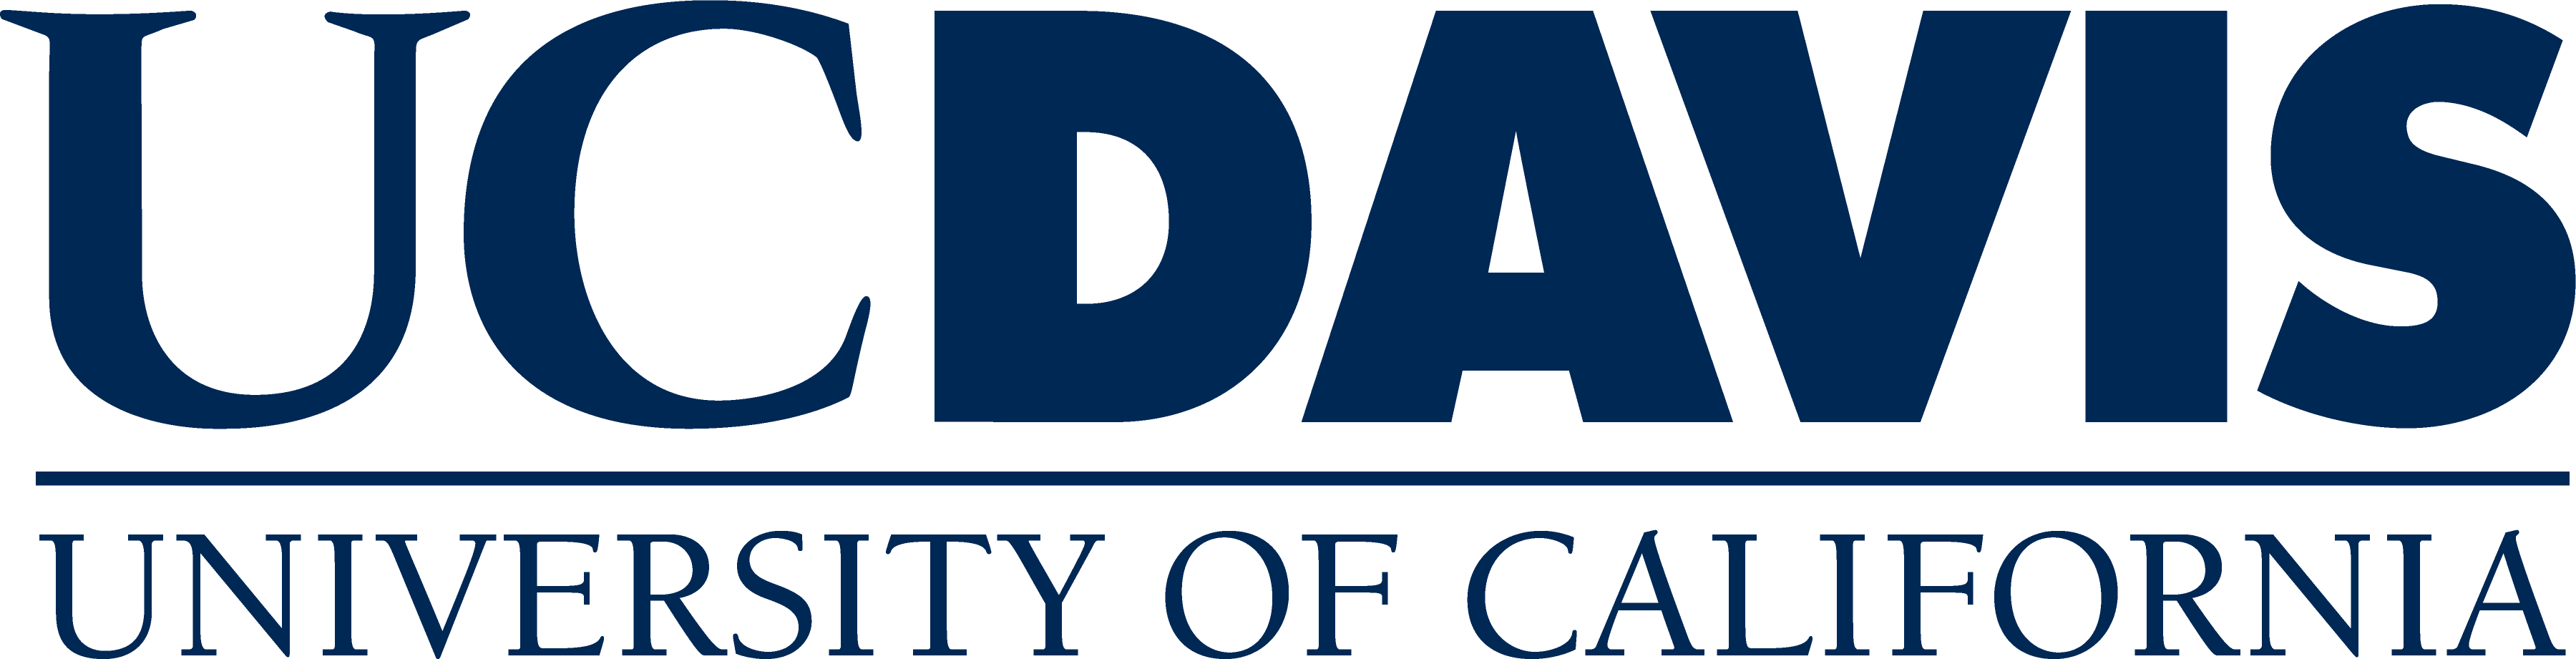 University of California Davis (UCD, UC Davis)